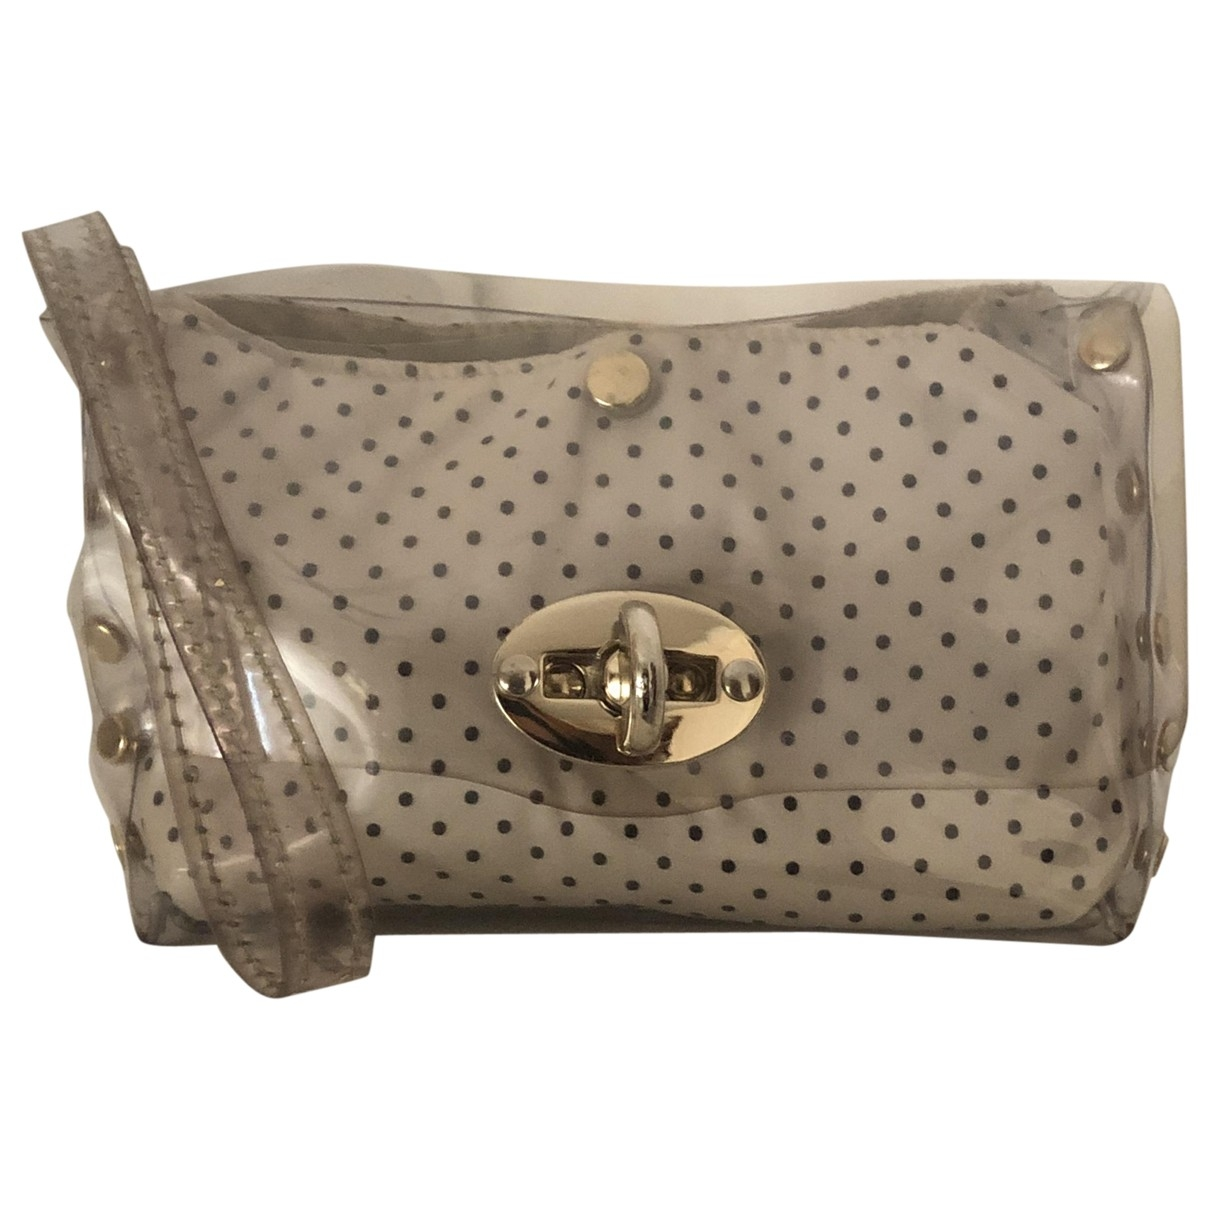 Zanellato \N Beige Silk Clutch bag for Women \N